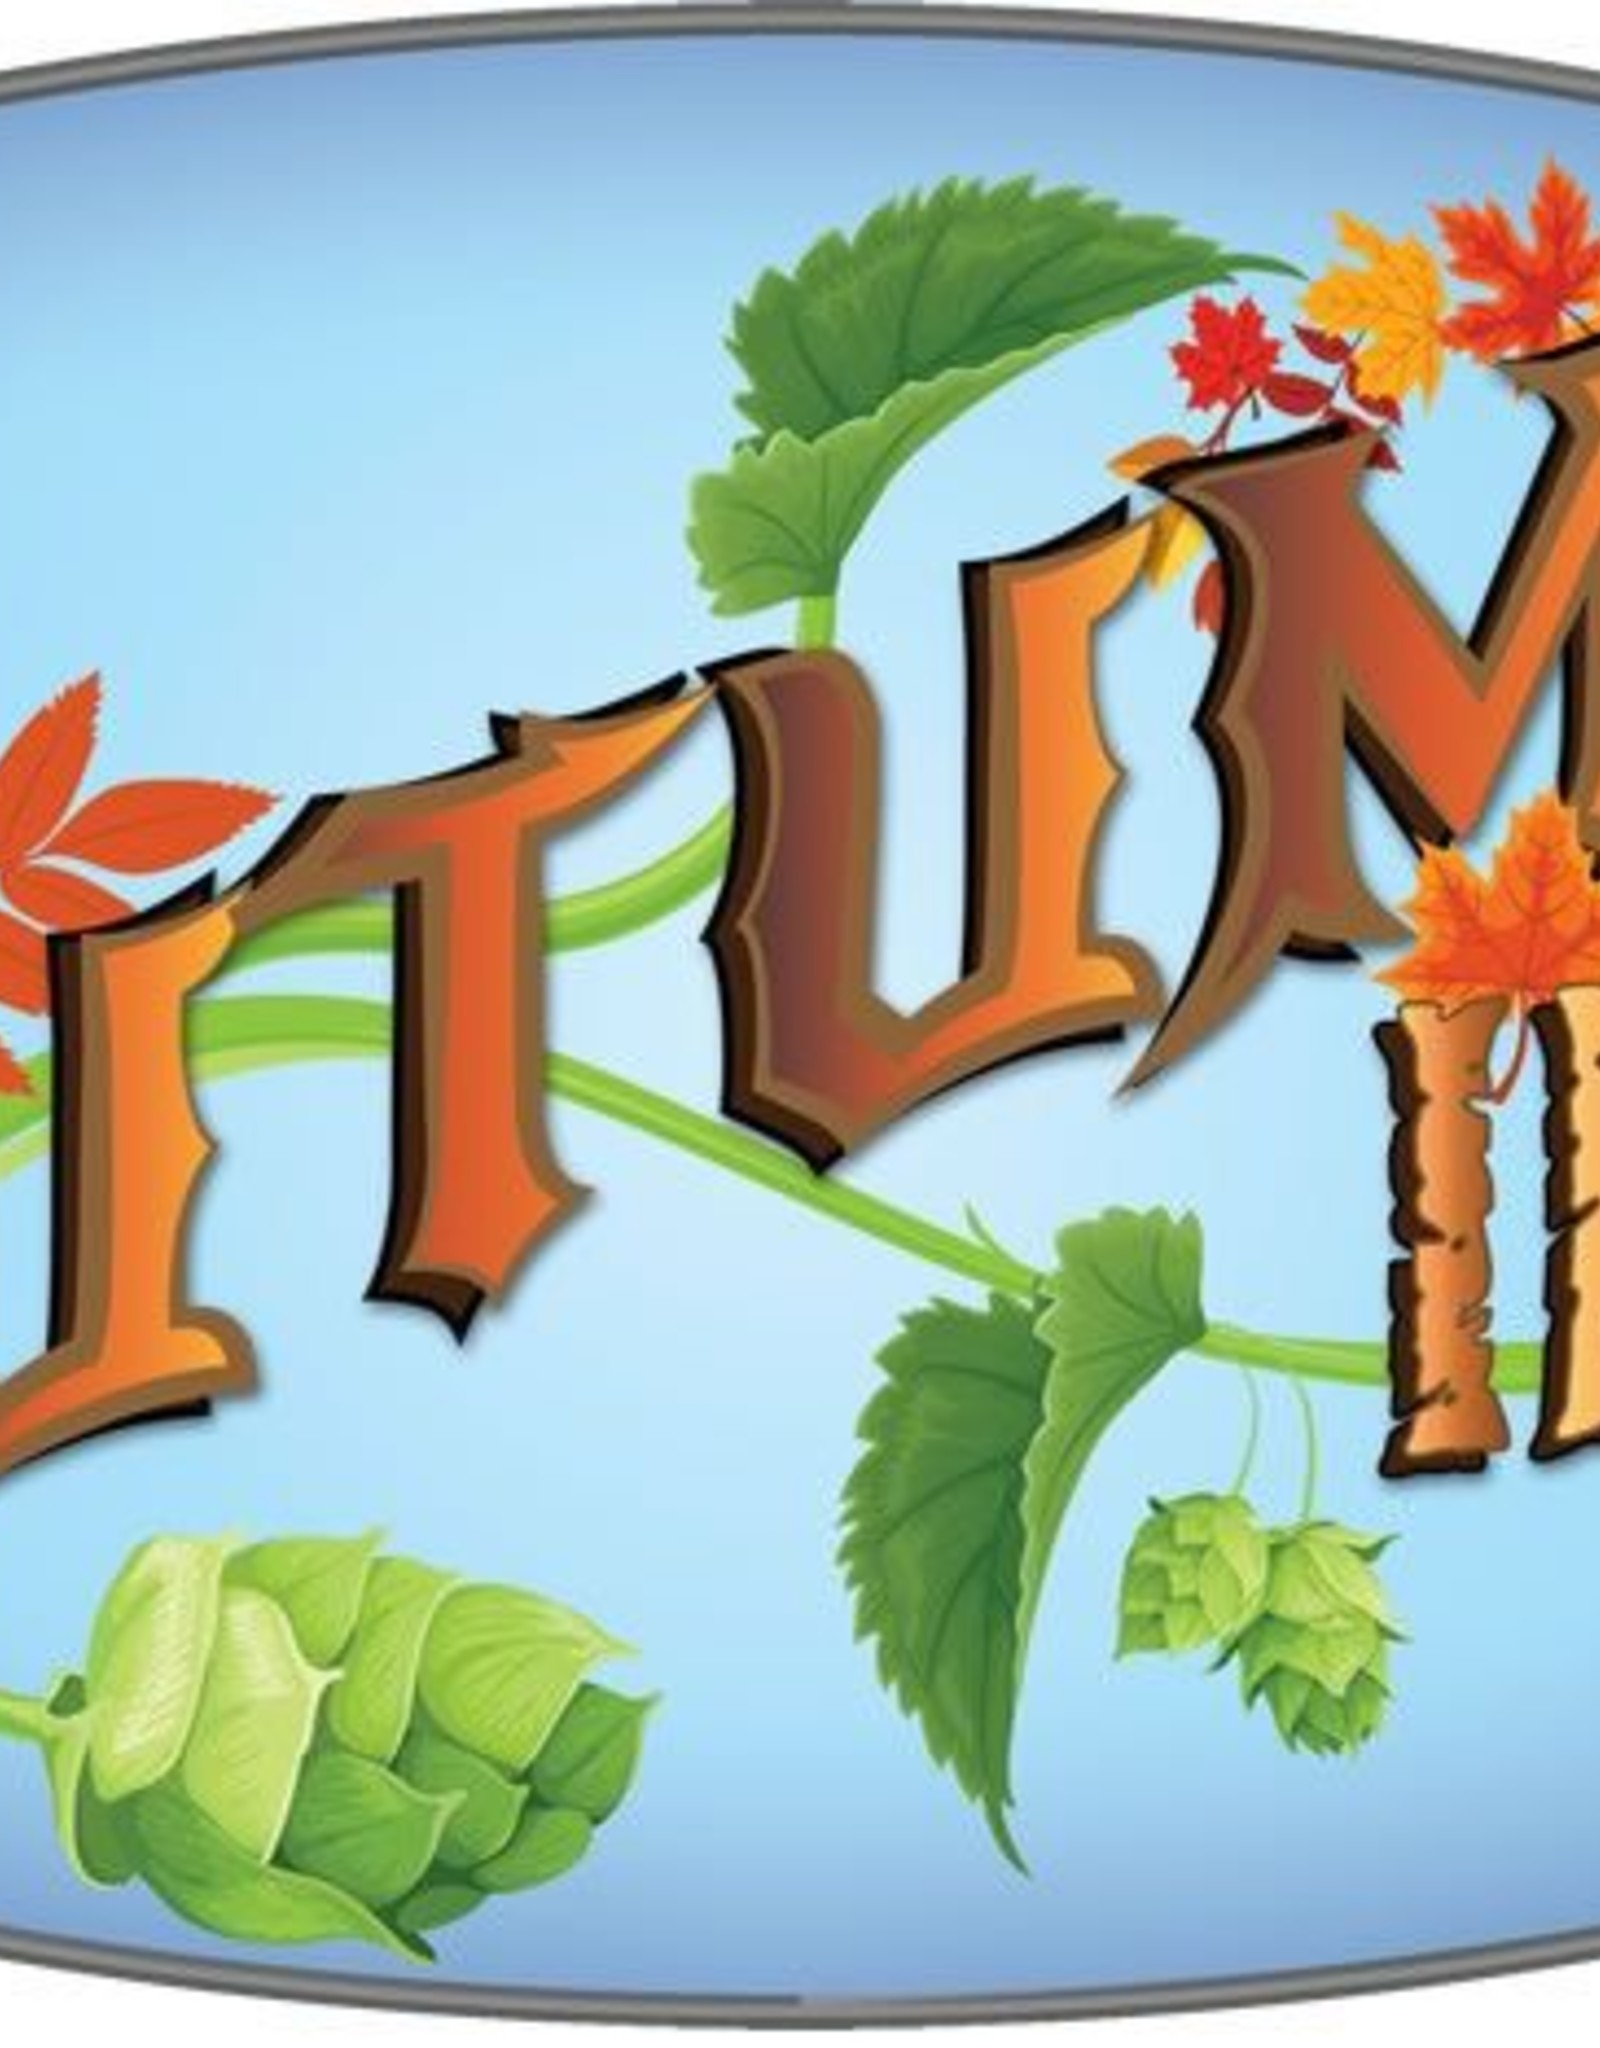 BREWERS BEST AUTUMN IPA INGREDIENT PACKAGE (LIMITED)